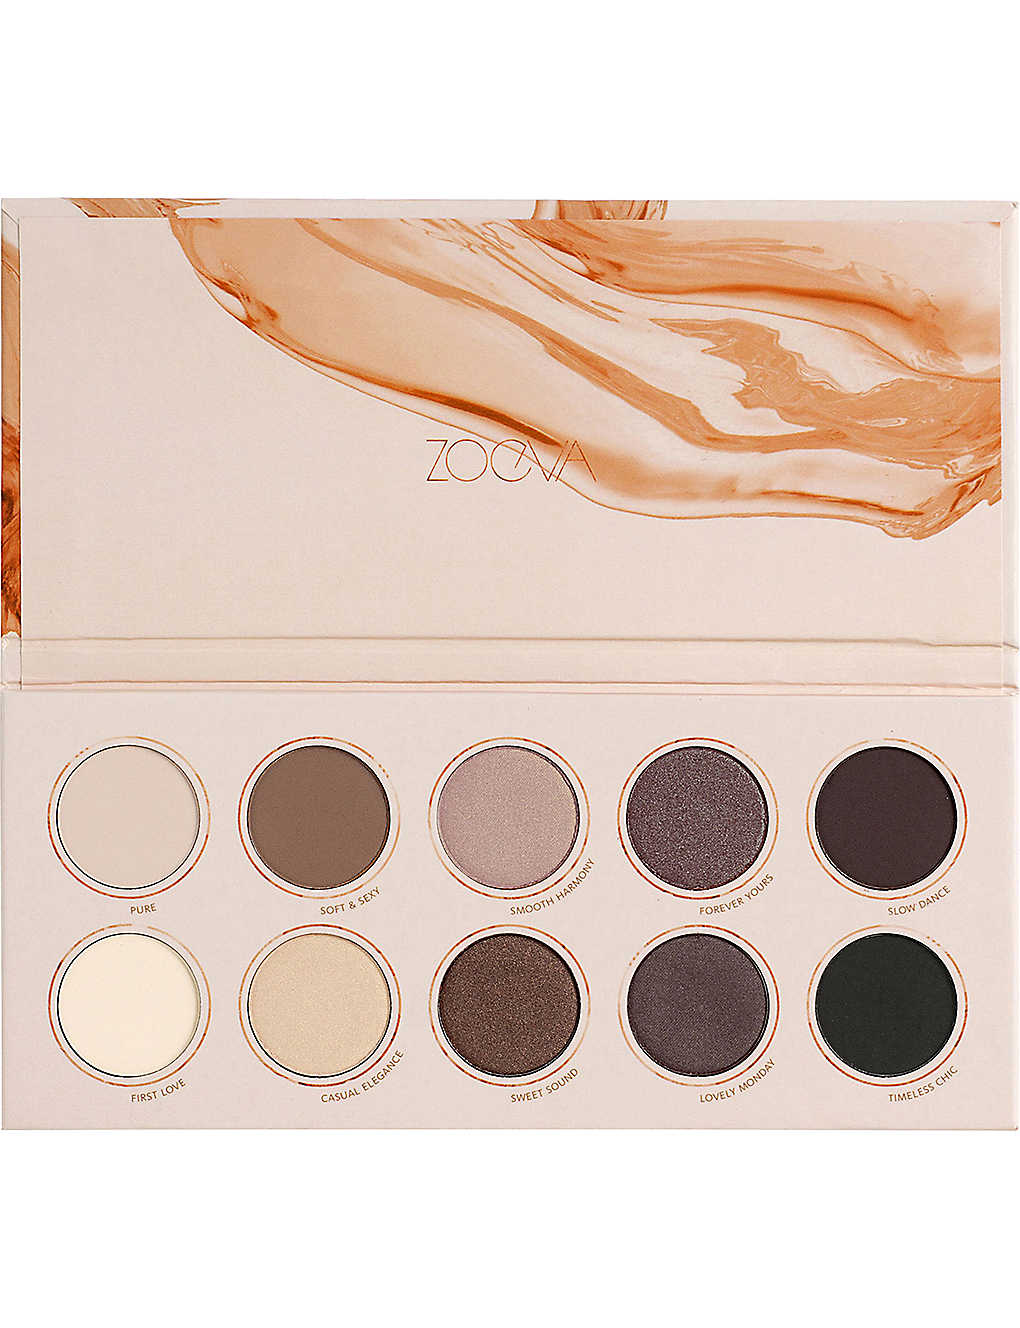 ZOEVA: Naturally Yours Palette